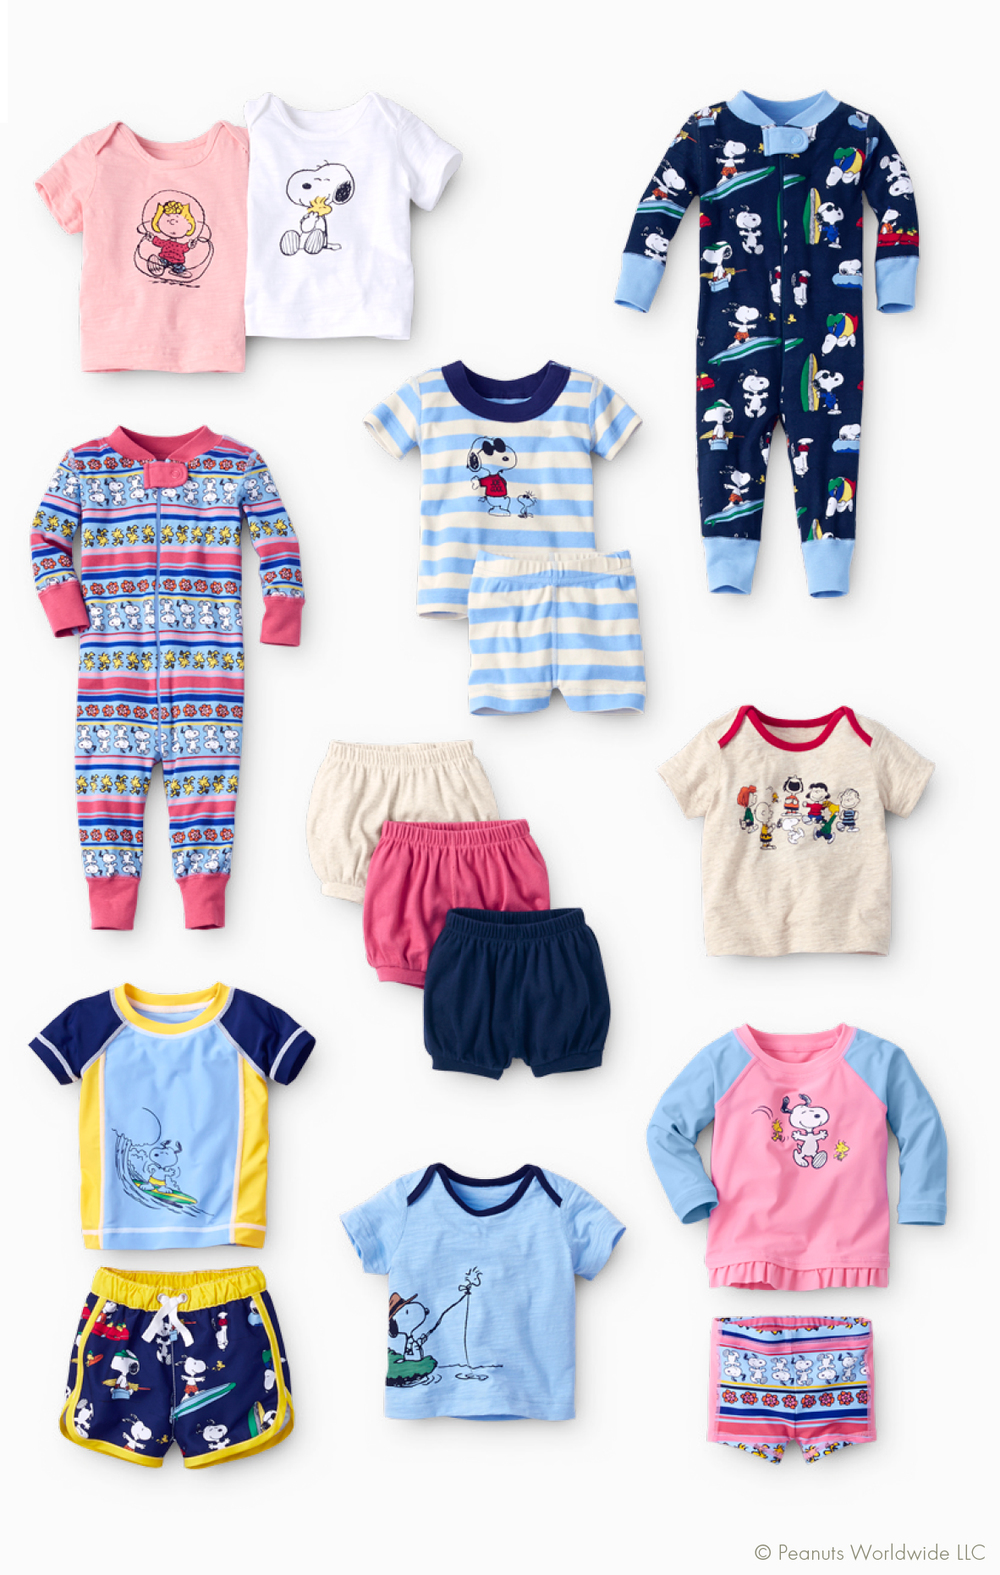 Peanuts Collection for baby from Hanna Andersson